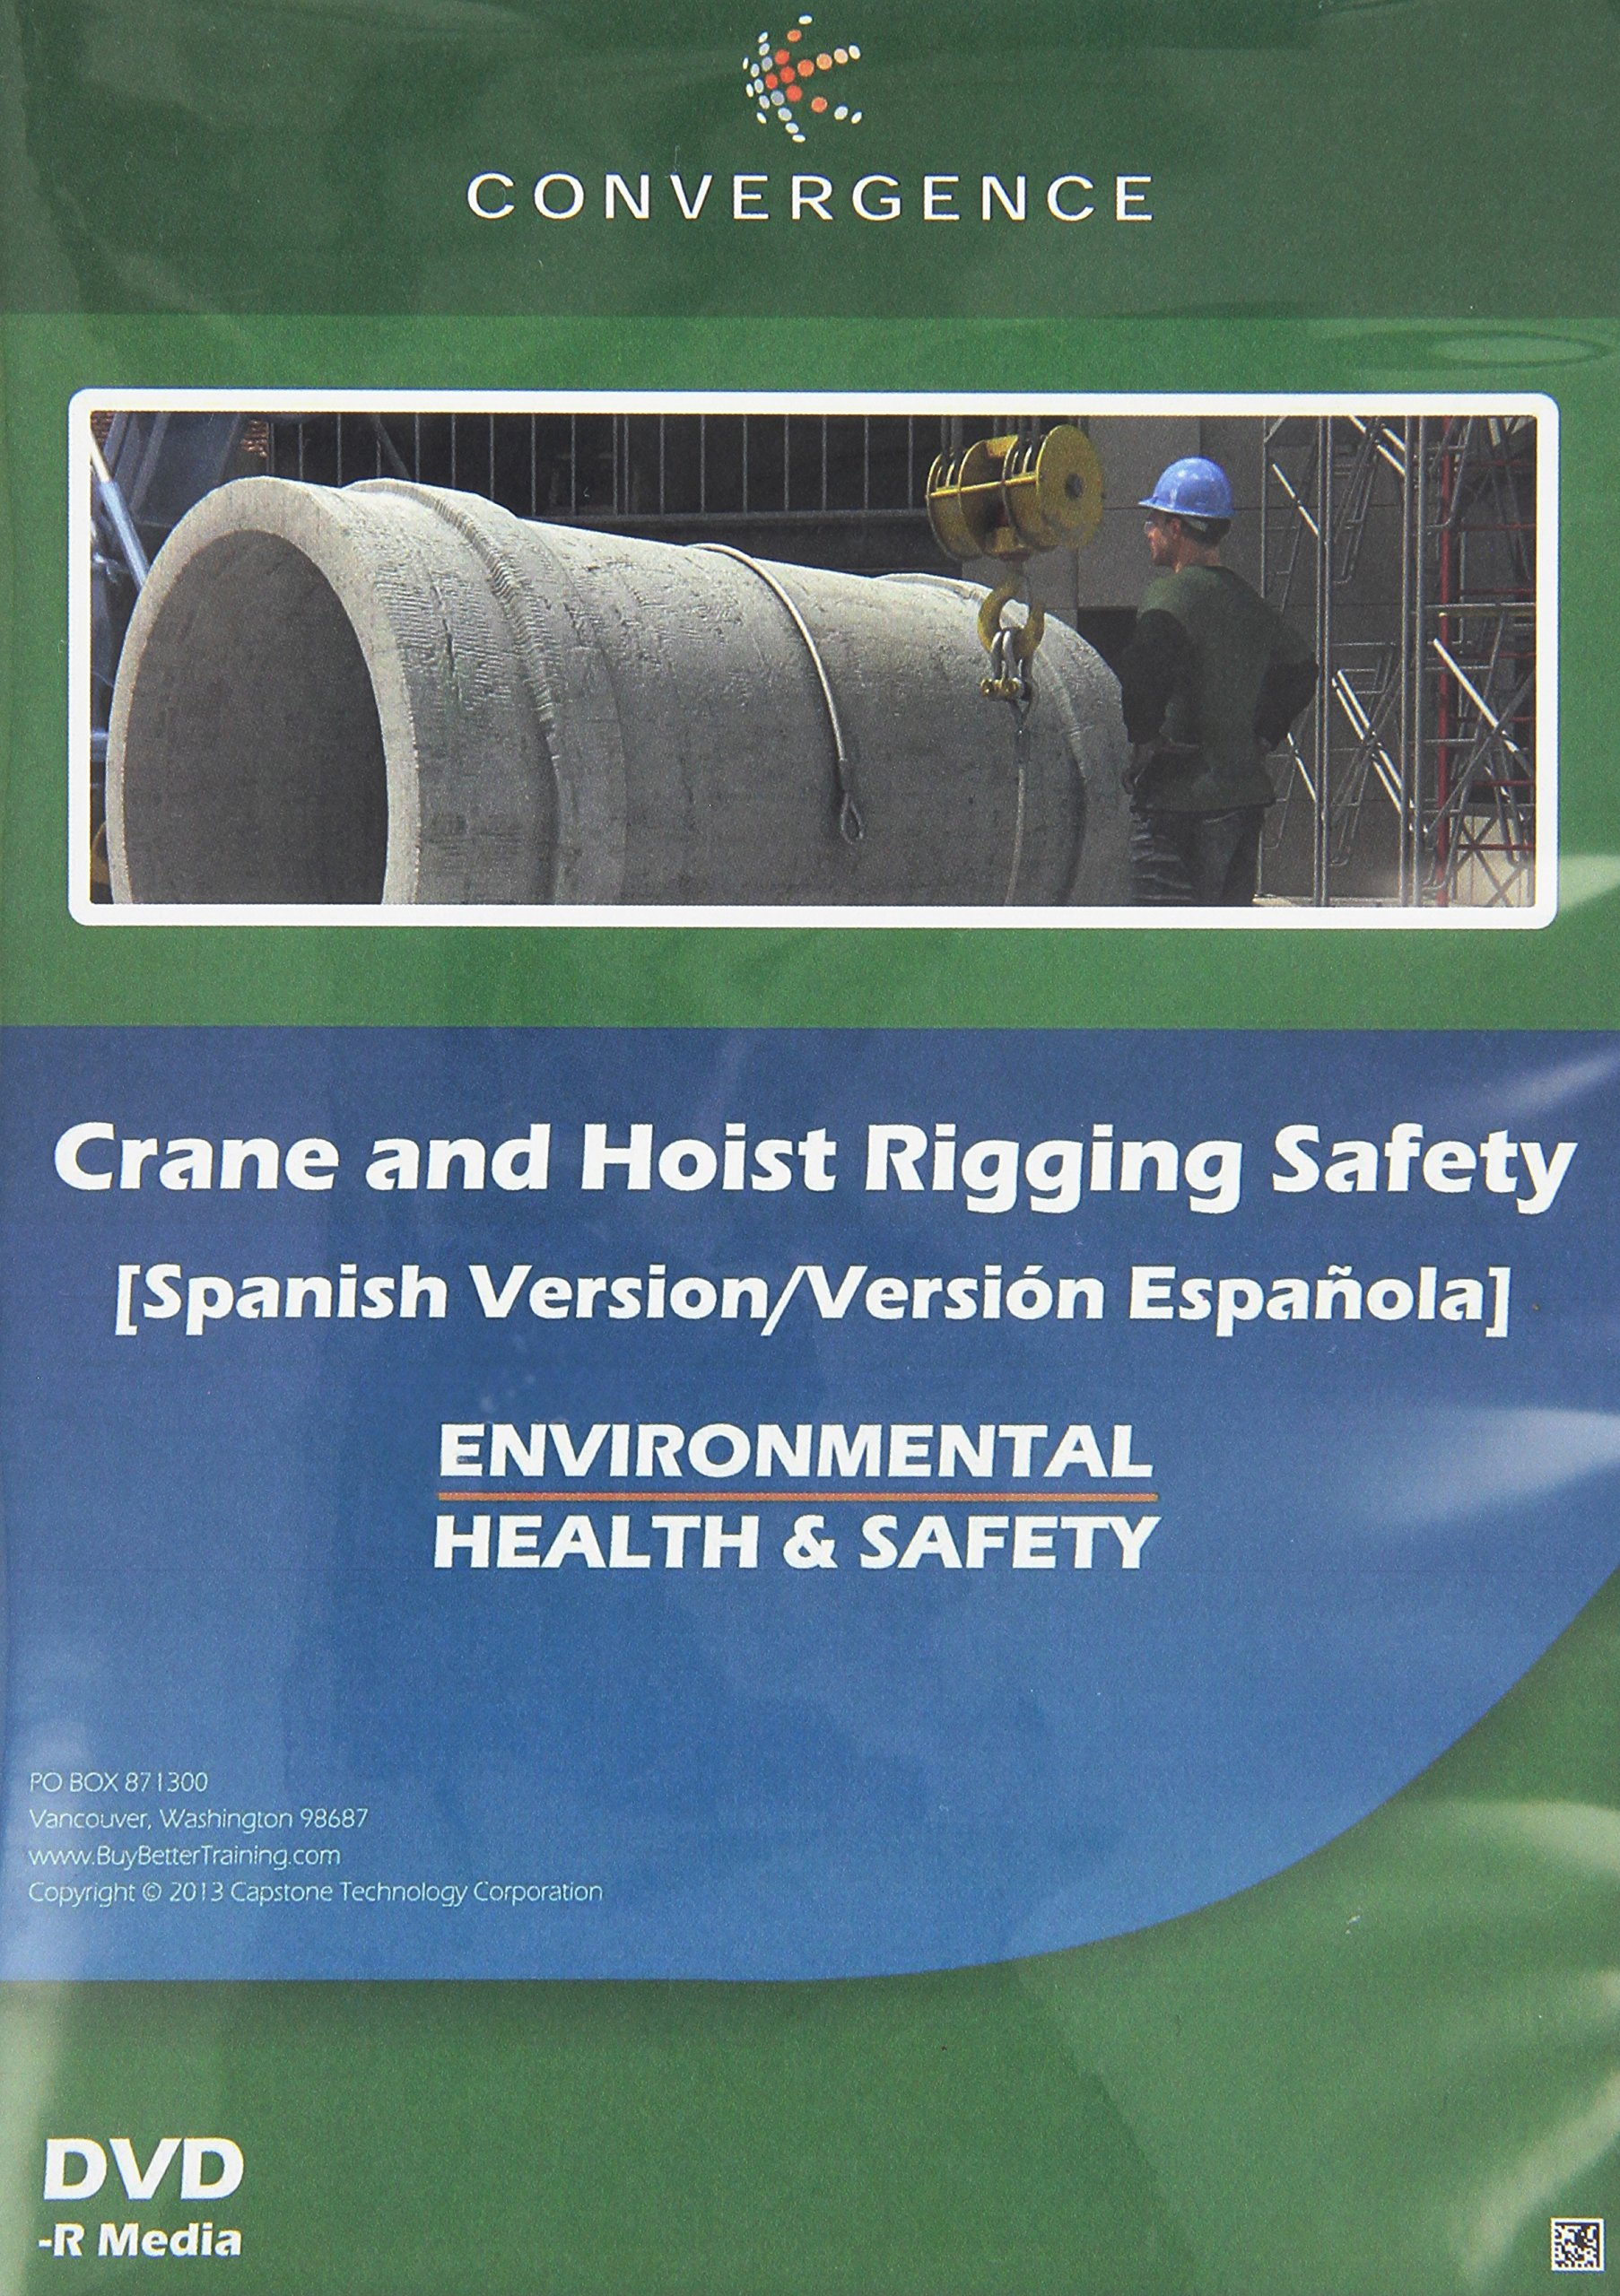 Convergence C-342-ES-US Crane and Hoist Rigging Safety Training Program DVD, 32 minutes Time, Spanish